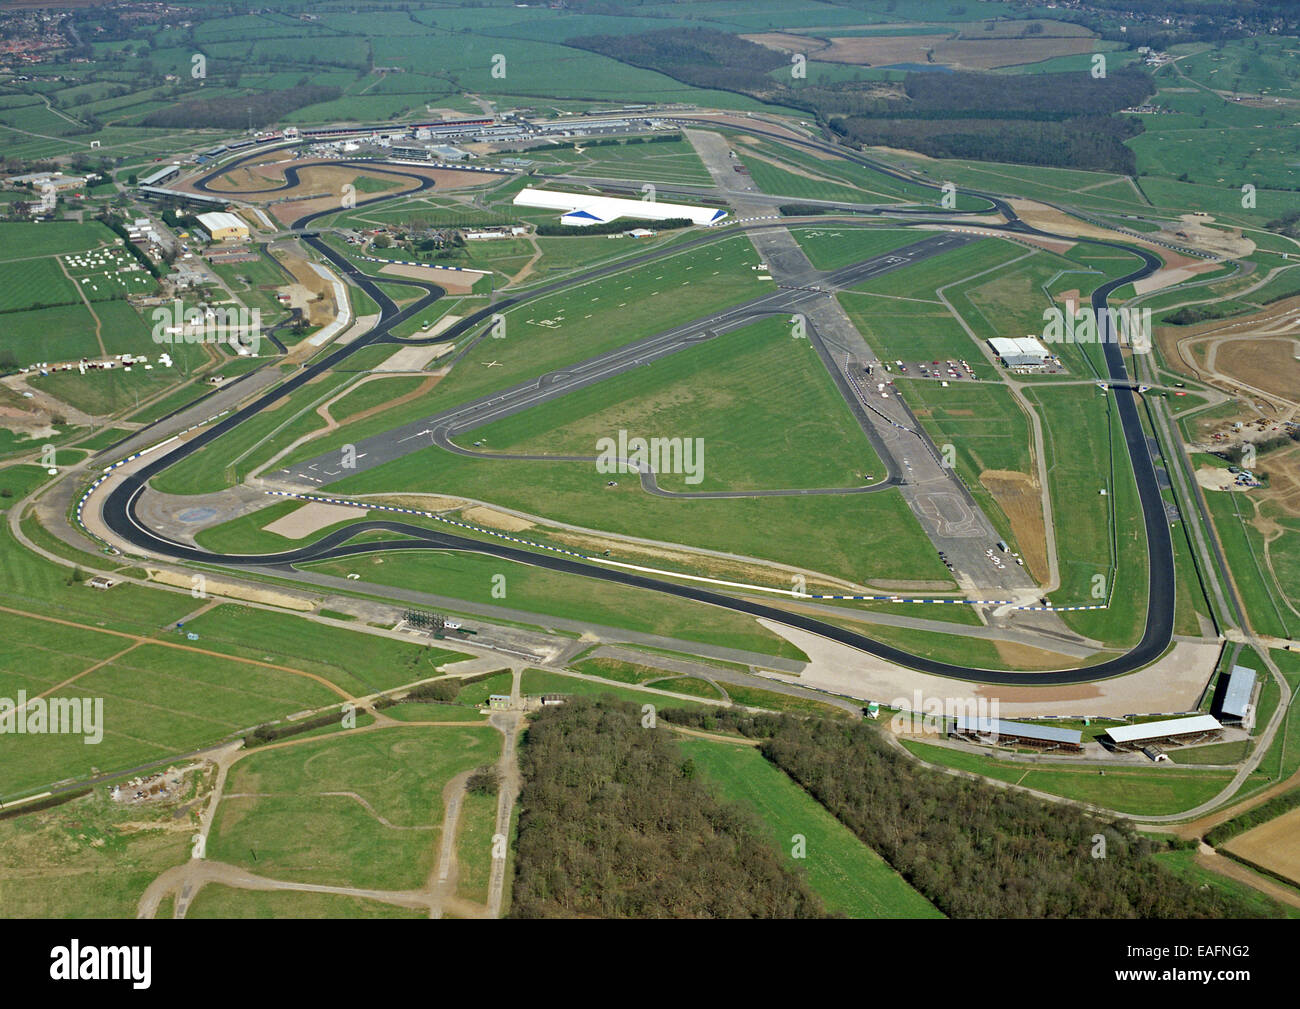 Enchanting Where Is Silverstone Inspiration - Classic Cars Ideas ...